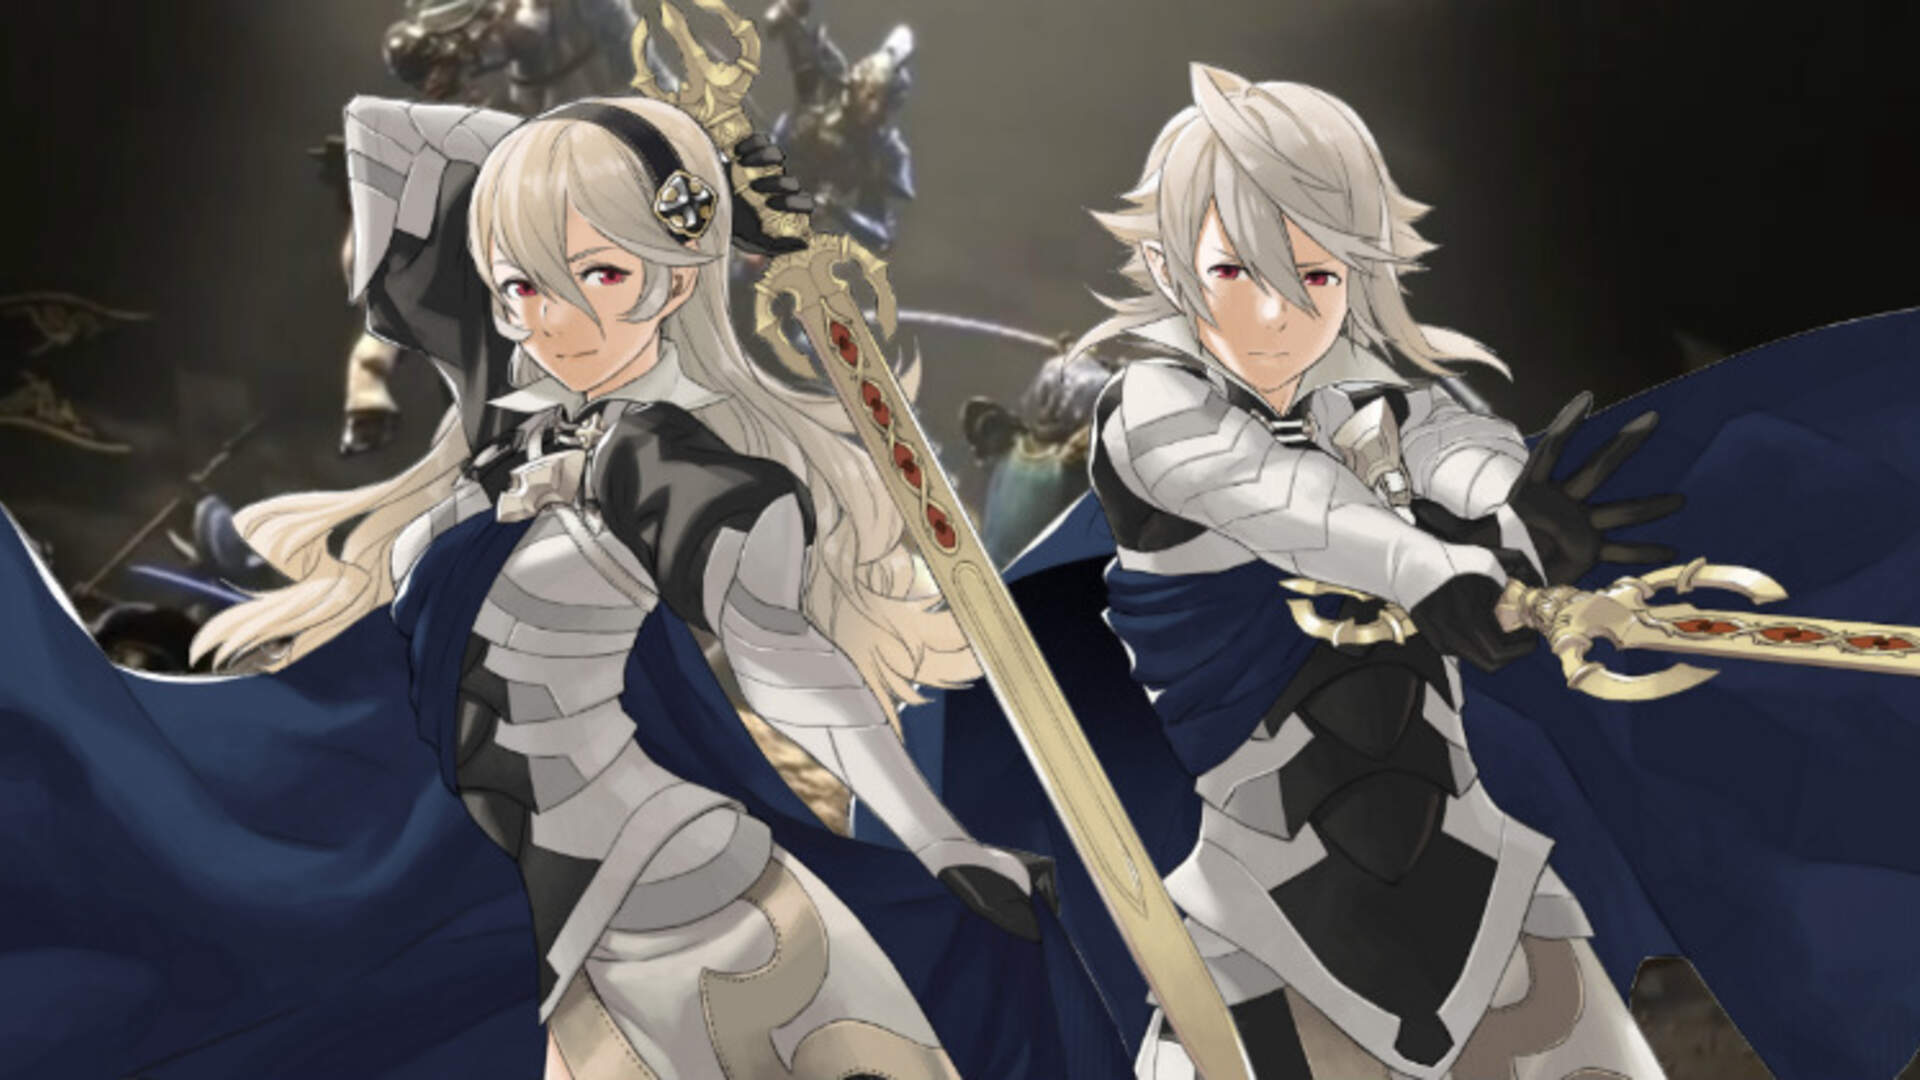 Fire Emblem Fates Heads West Without Controversial Gay Support Scene [Updated]